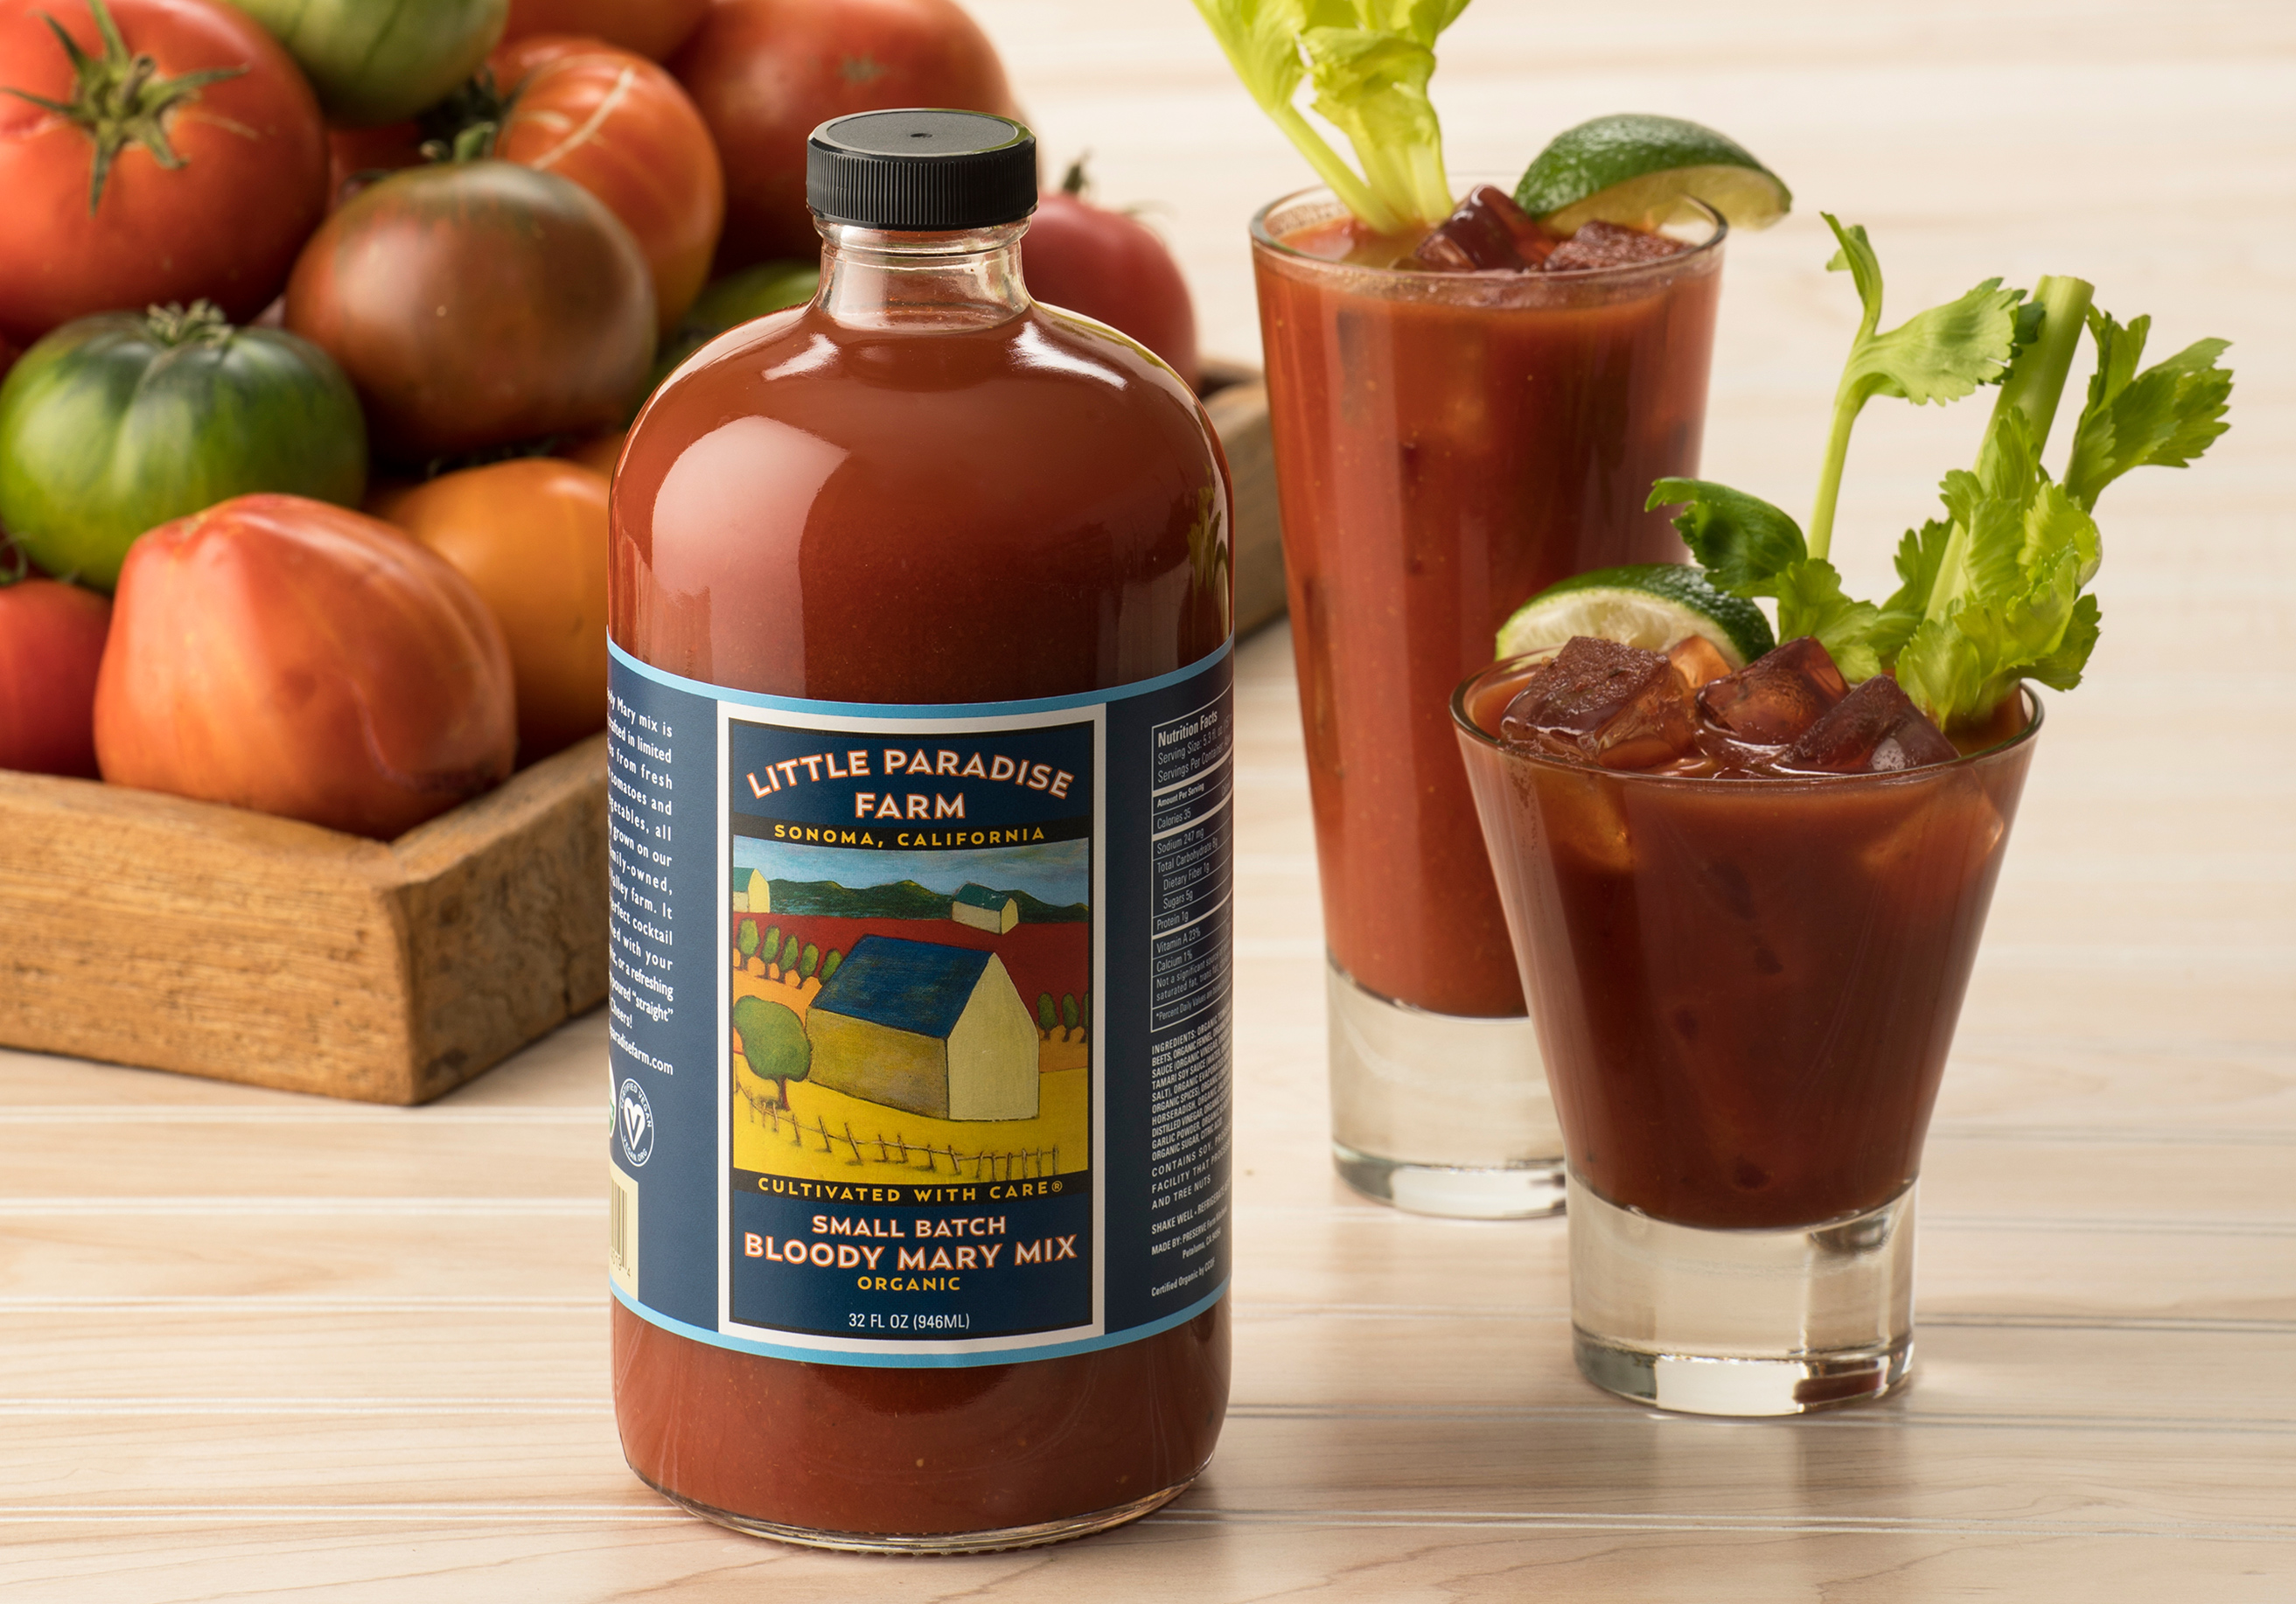 Little Paradise Farm Bloody Mary-Mix_7_23_17